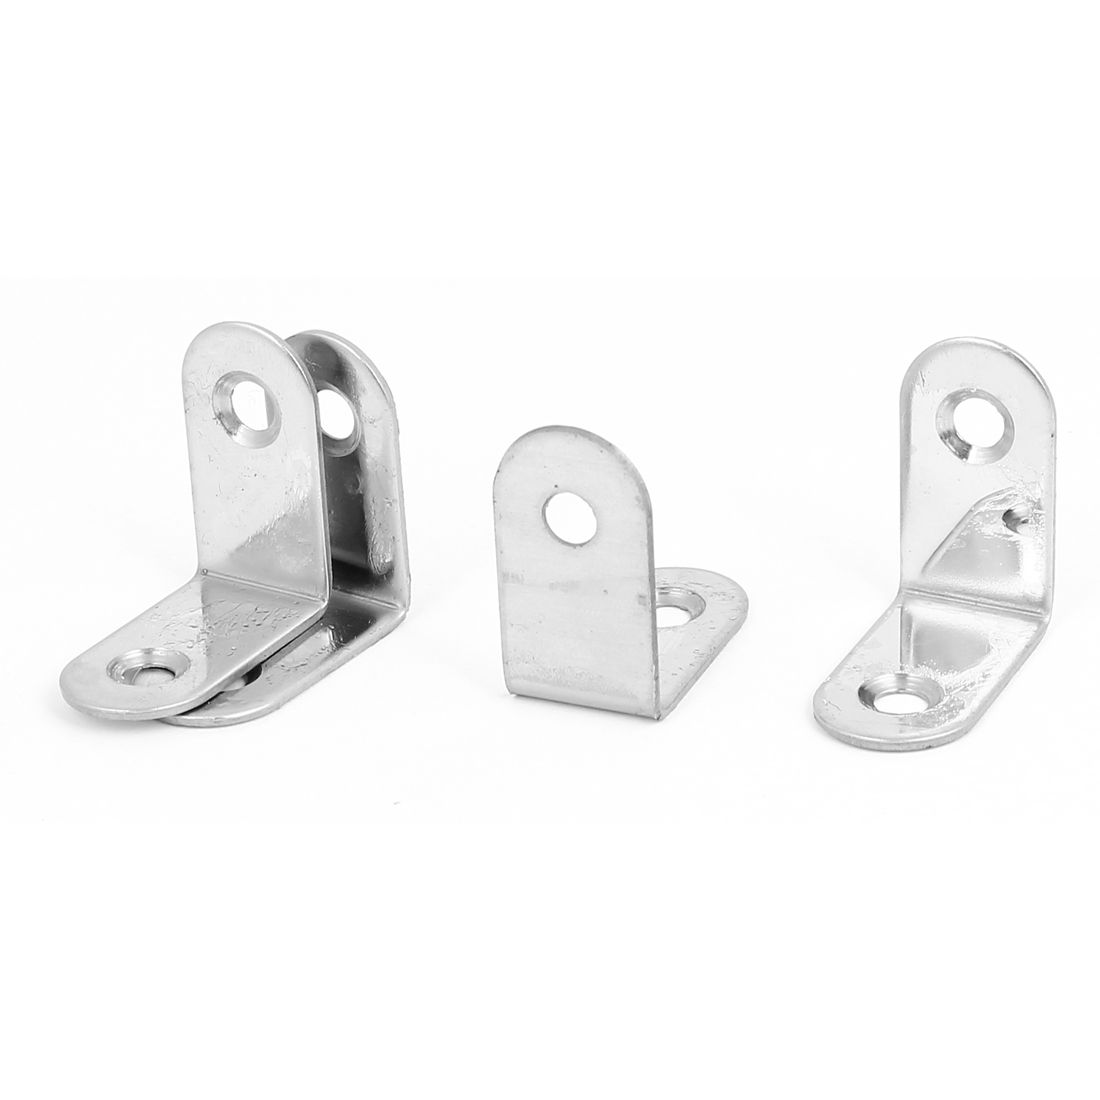 30mm x 30mm Shelf Support Corner Brace Joint Right Angle Metal Bracket 4Pcs